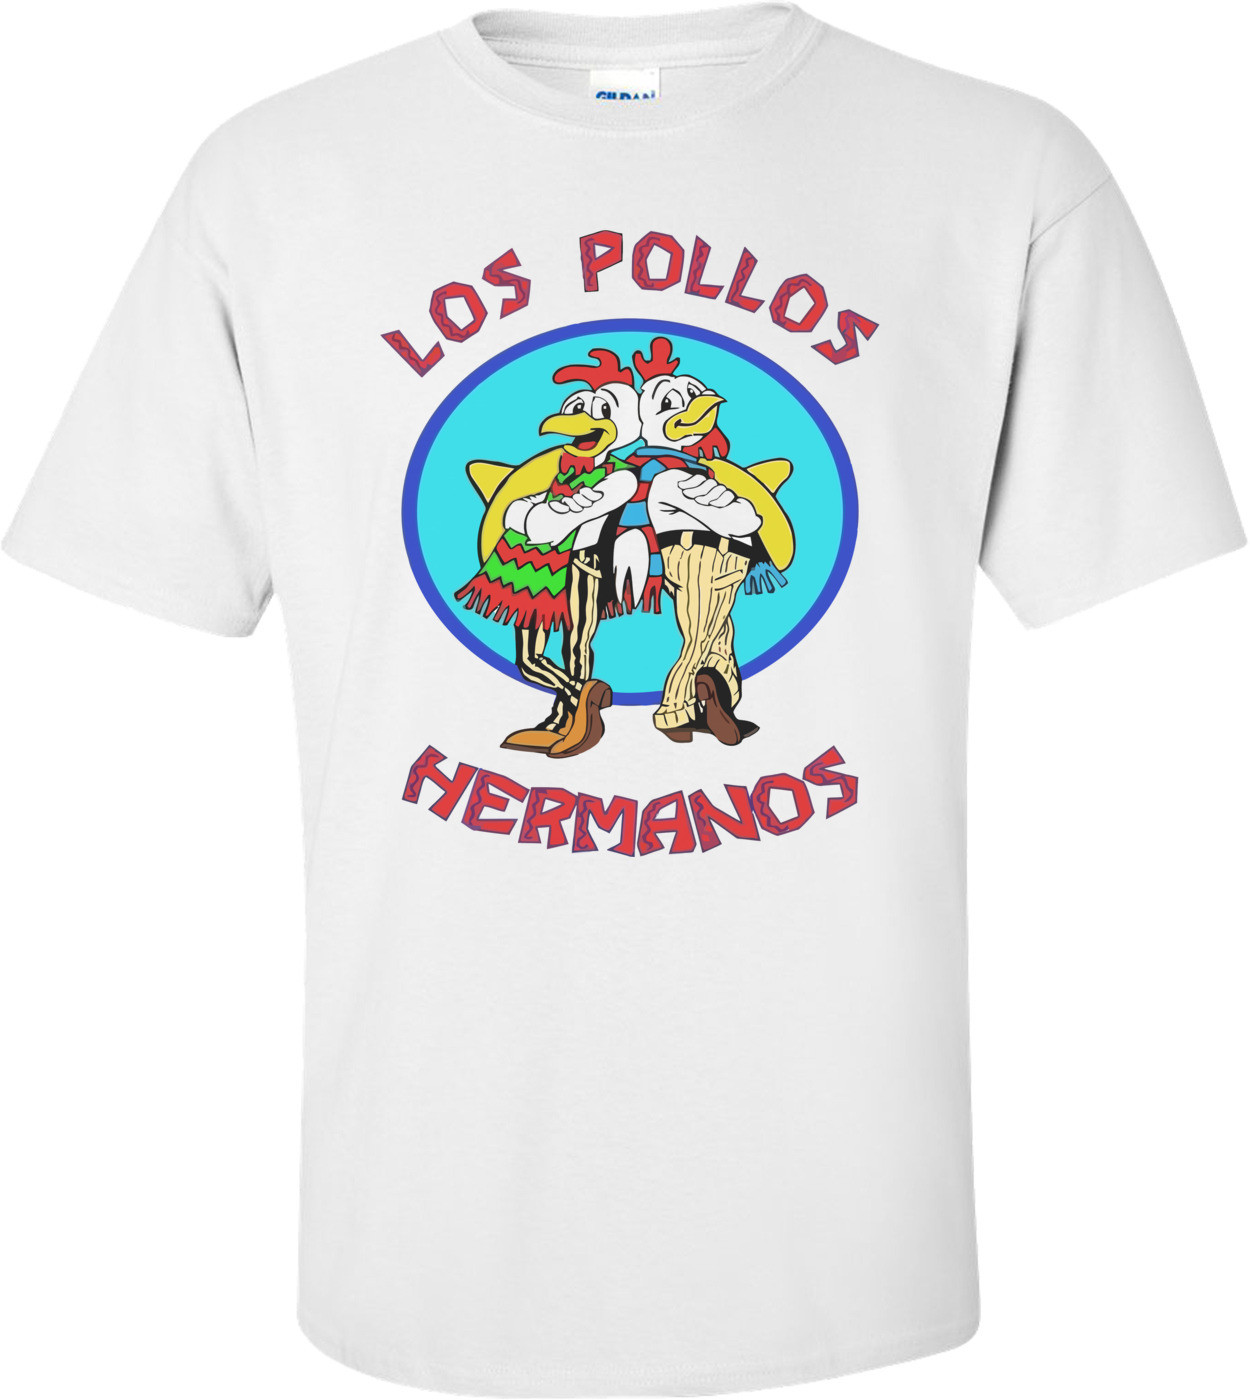 Los Pollos Hermanos Breaking Bad - Better Call Saul - Shirt